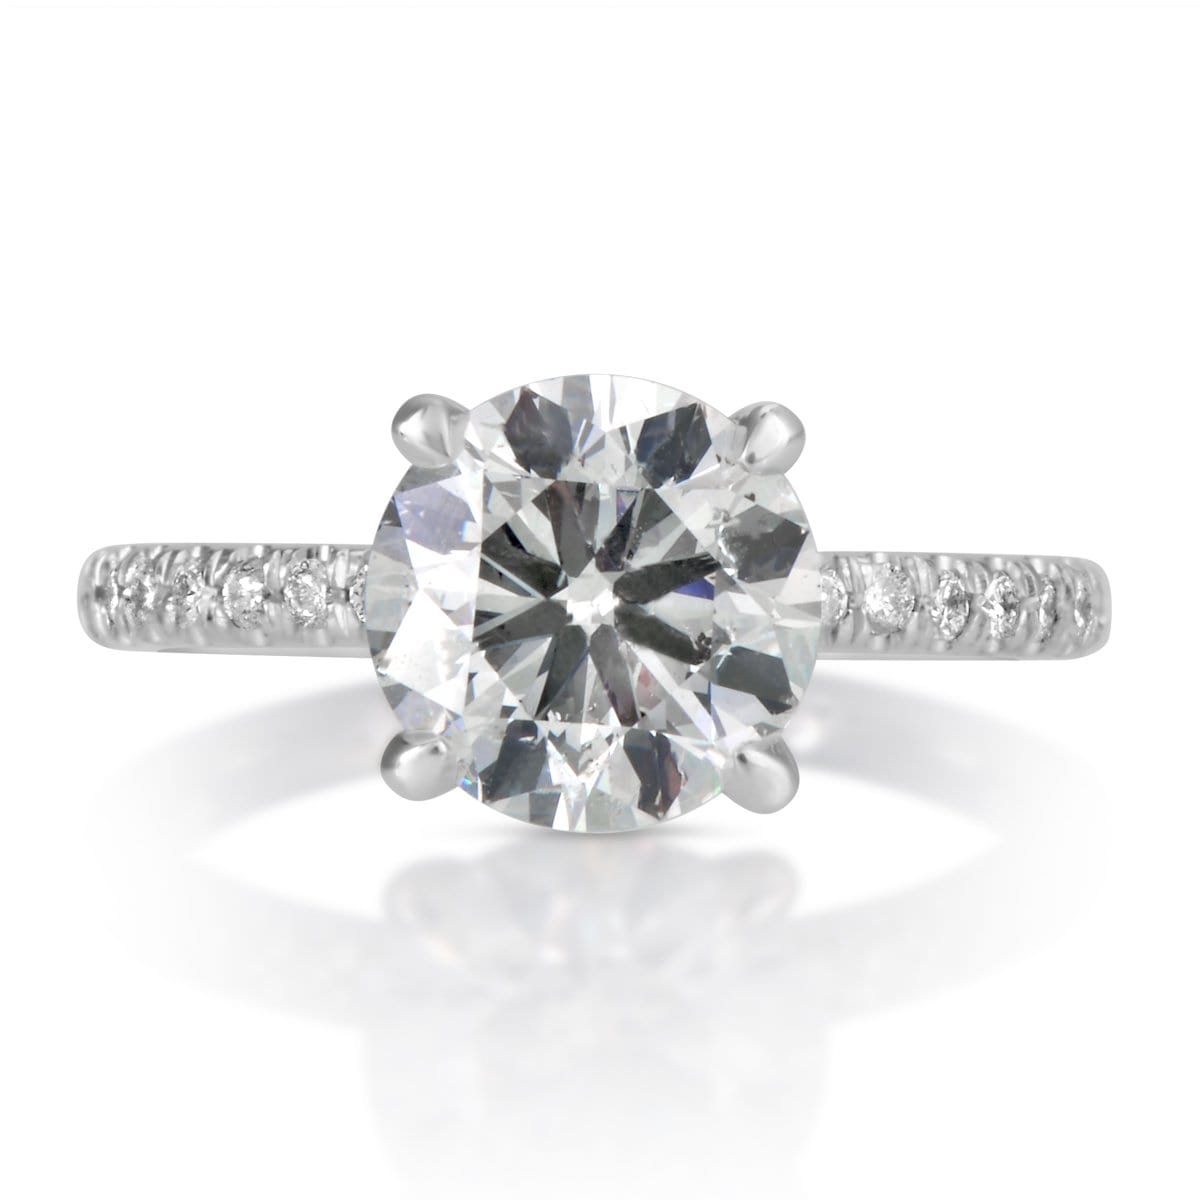 2.20 ct Round Brilliant Cut Diamond Engagement Ring